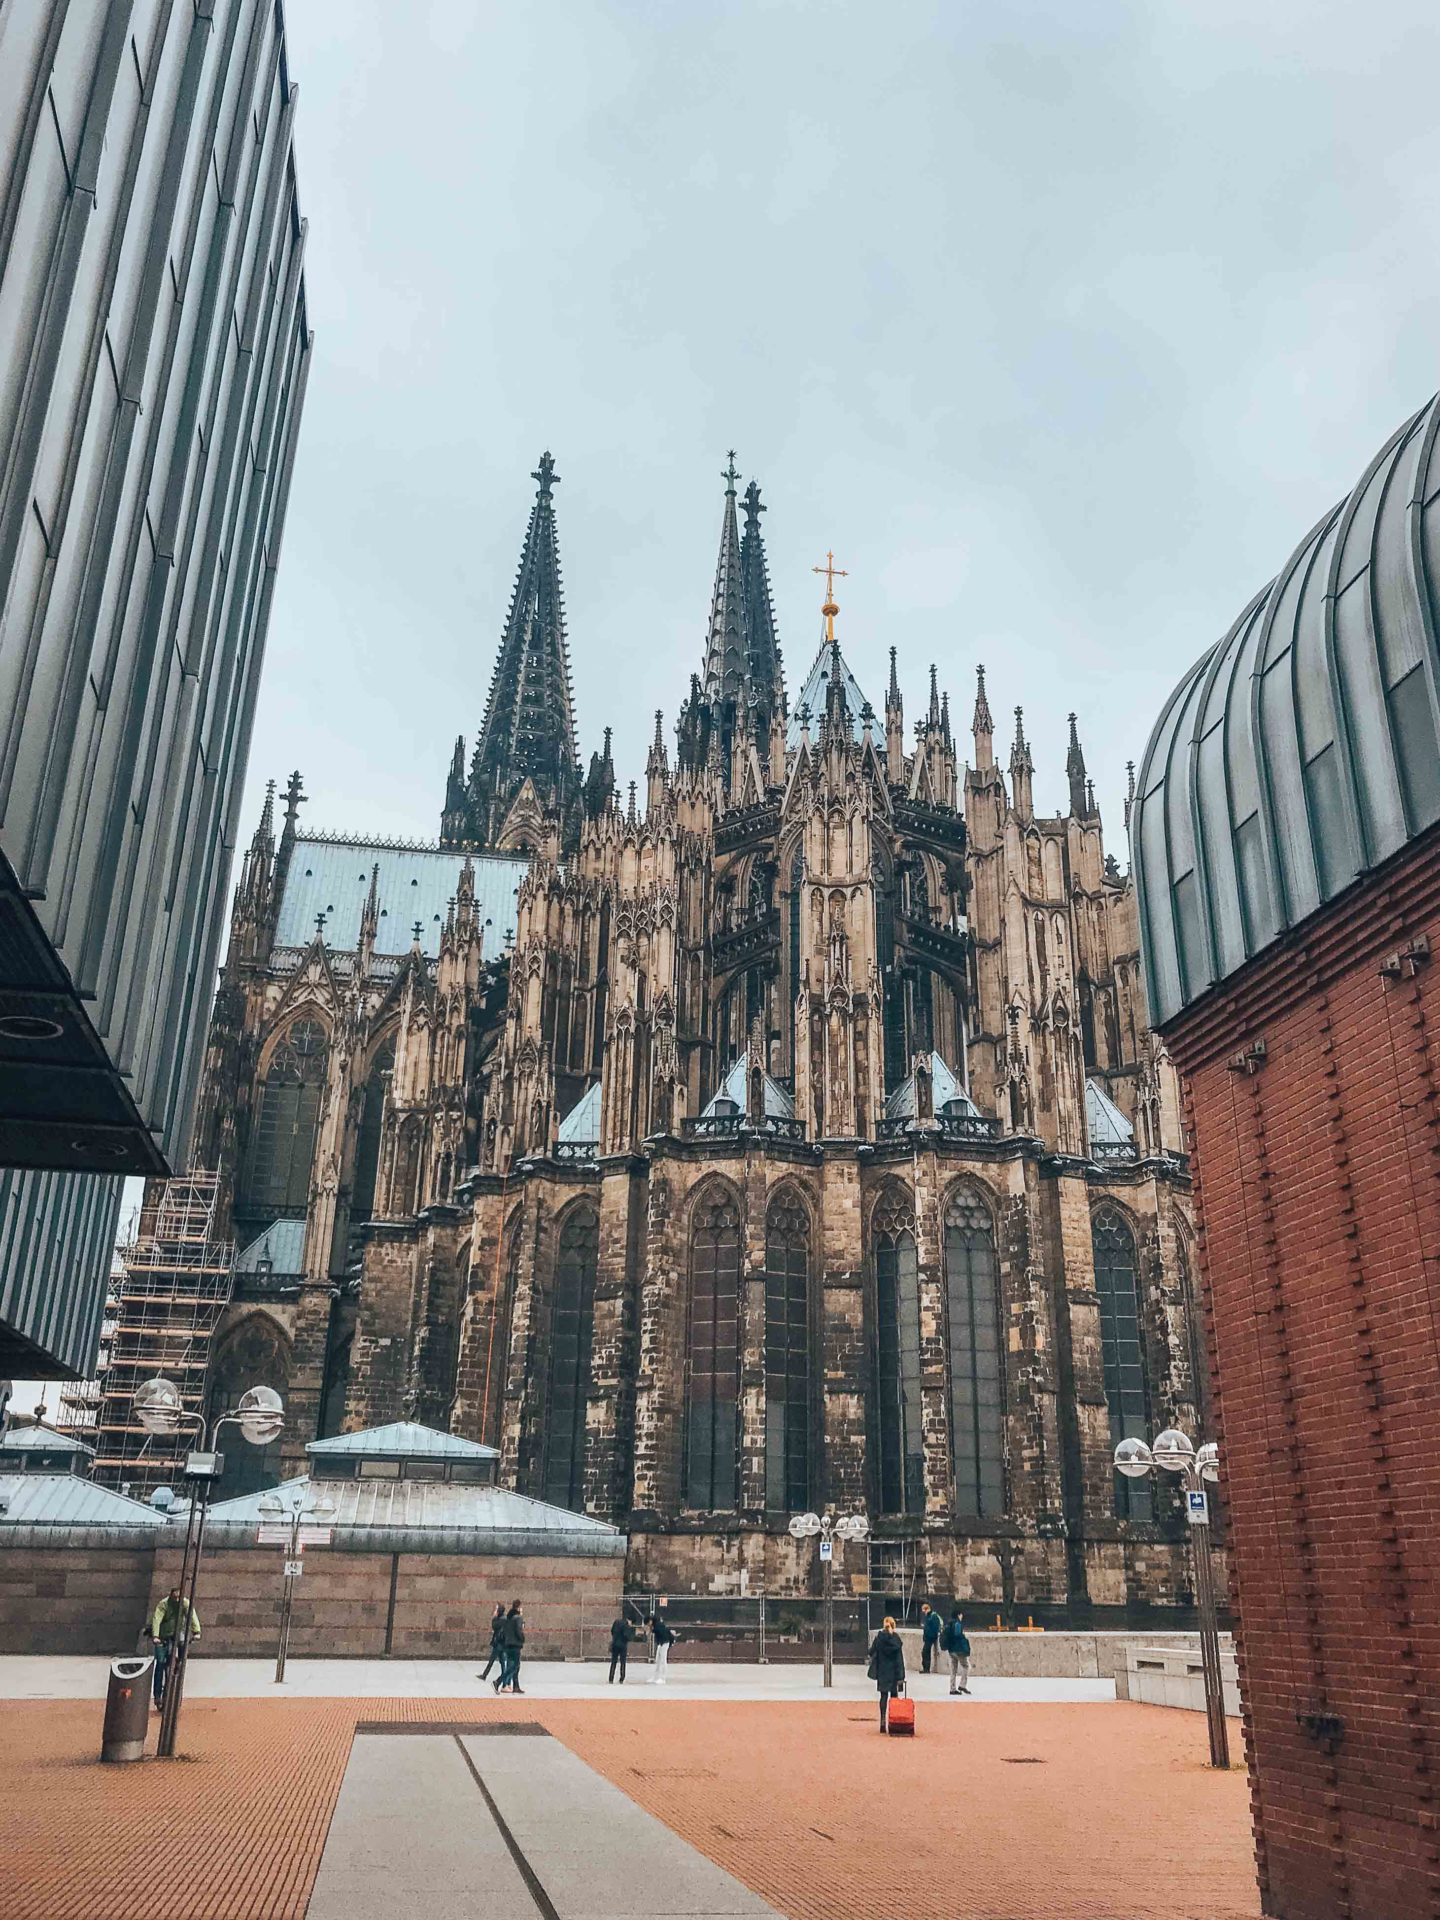 Cologne Cathedral from the outside